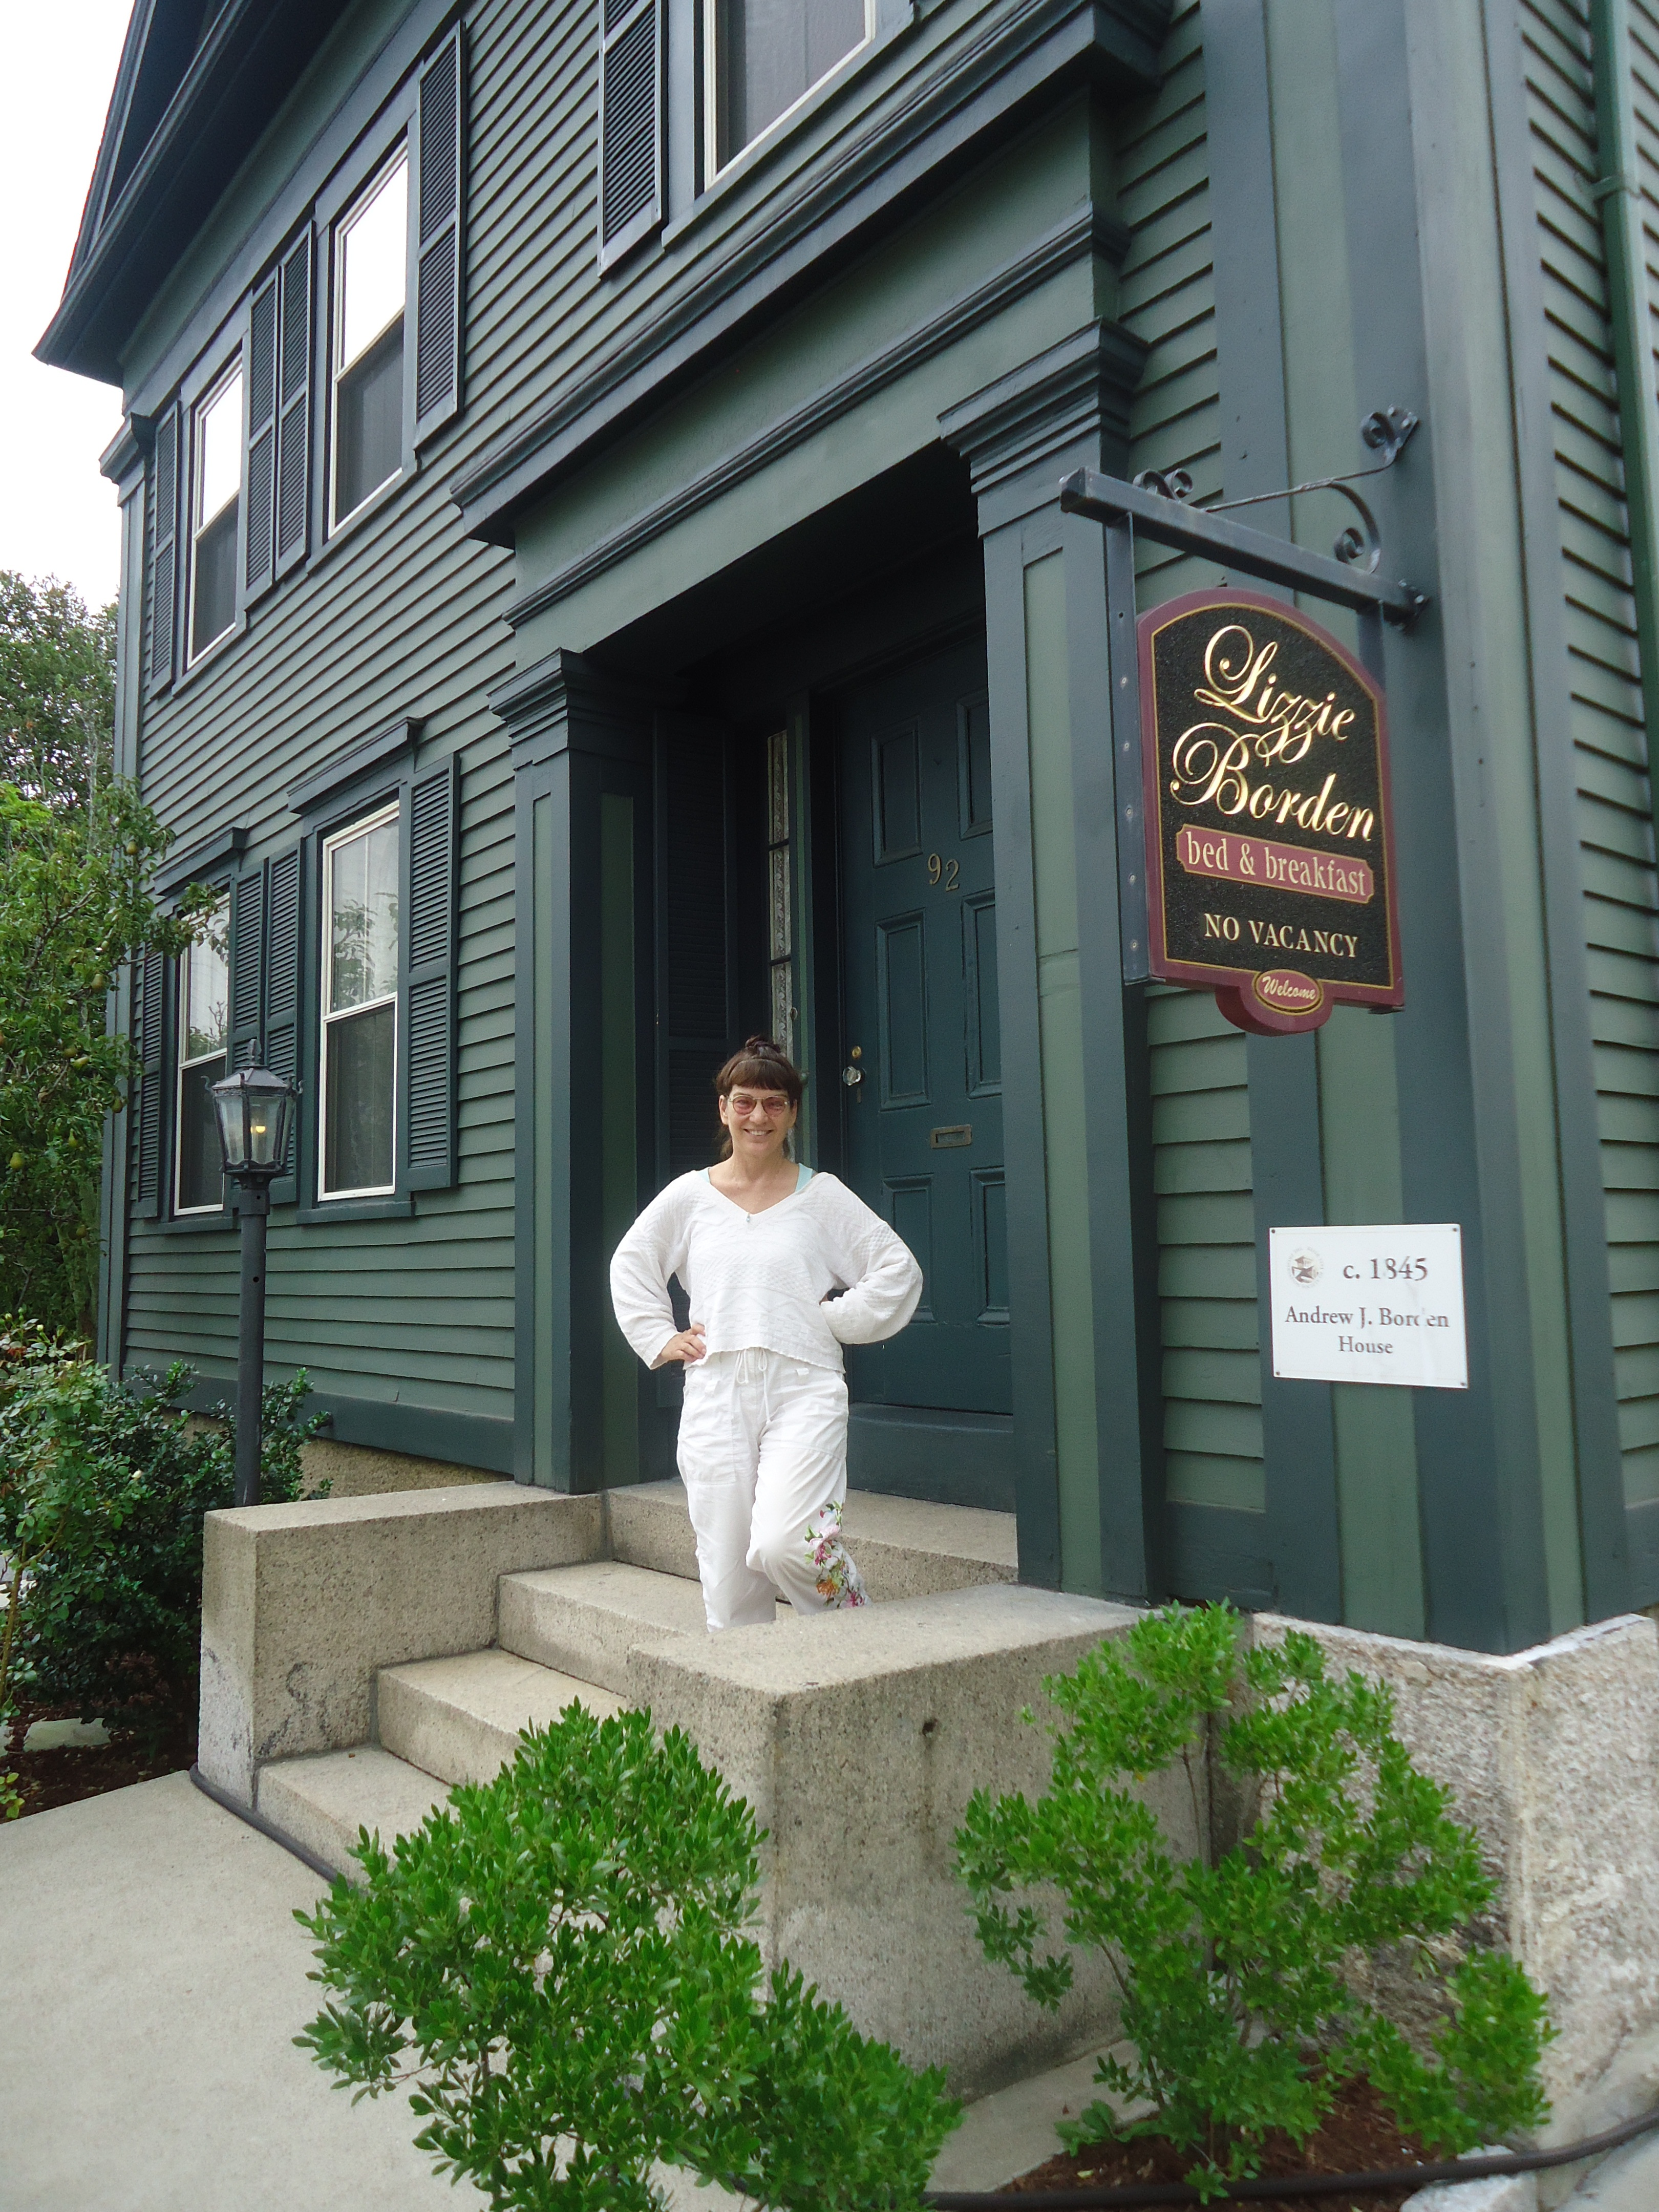 Fall River Historical Society  Lizzie Borden : Warps & Wefts